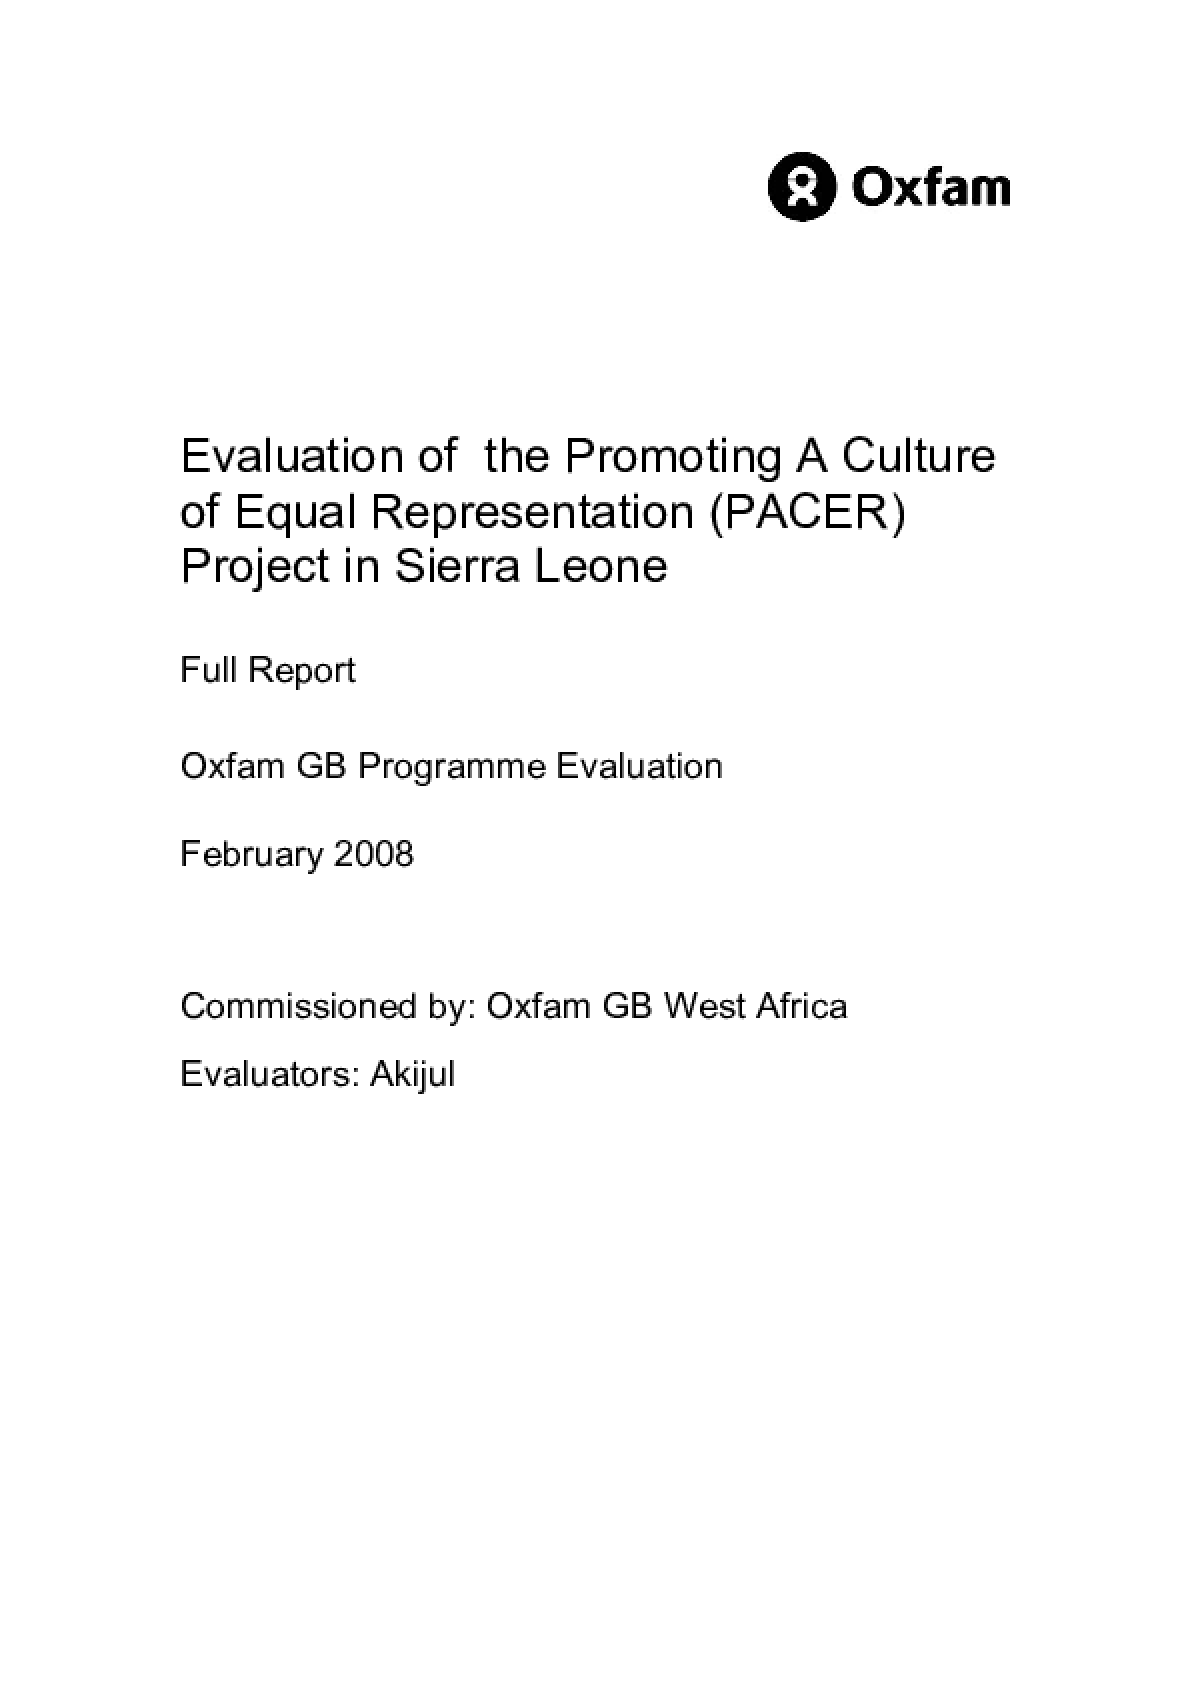 Evaluation of the Promoting A Culture of Equal Representation (PACER) Project in Sierra Leone